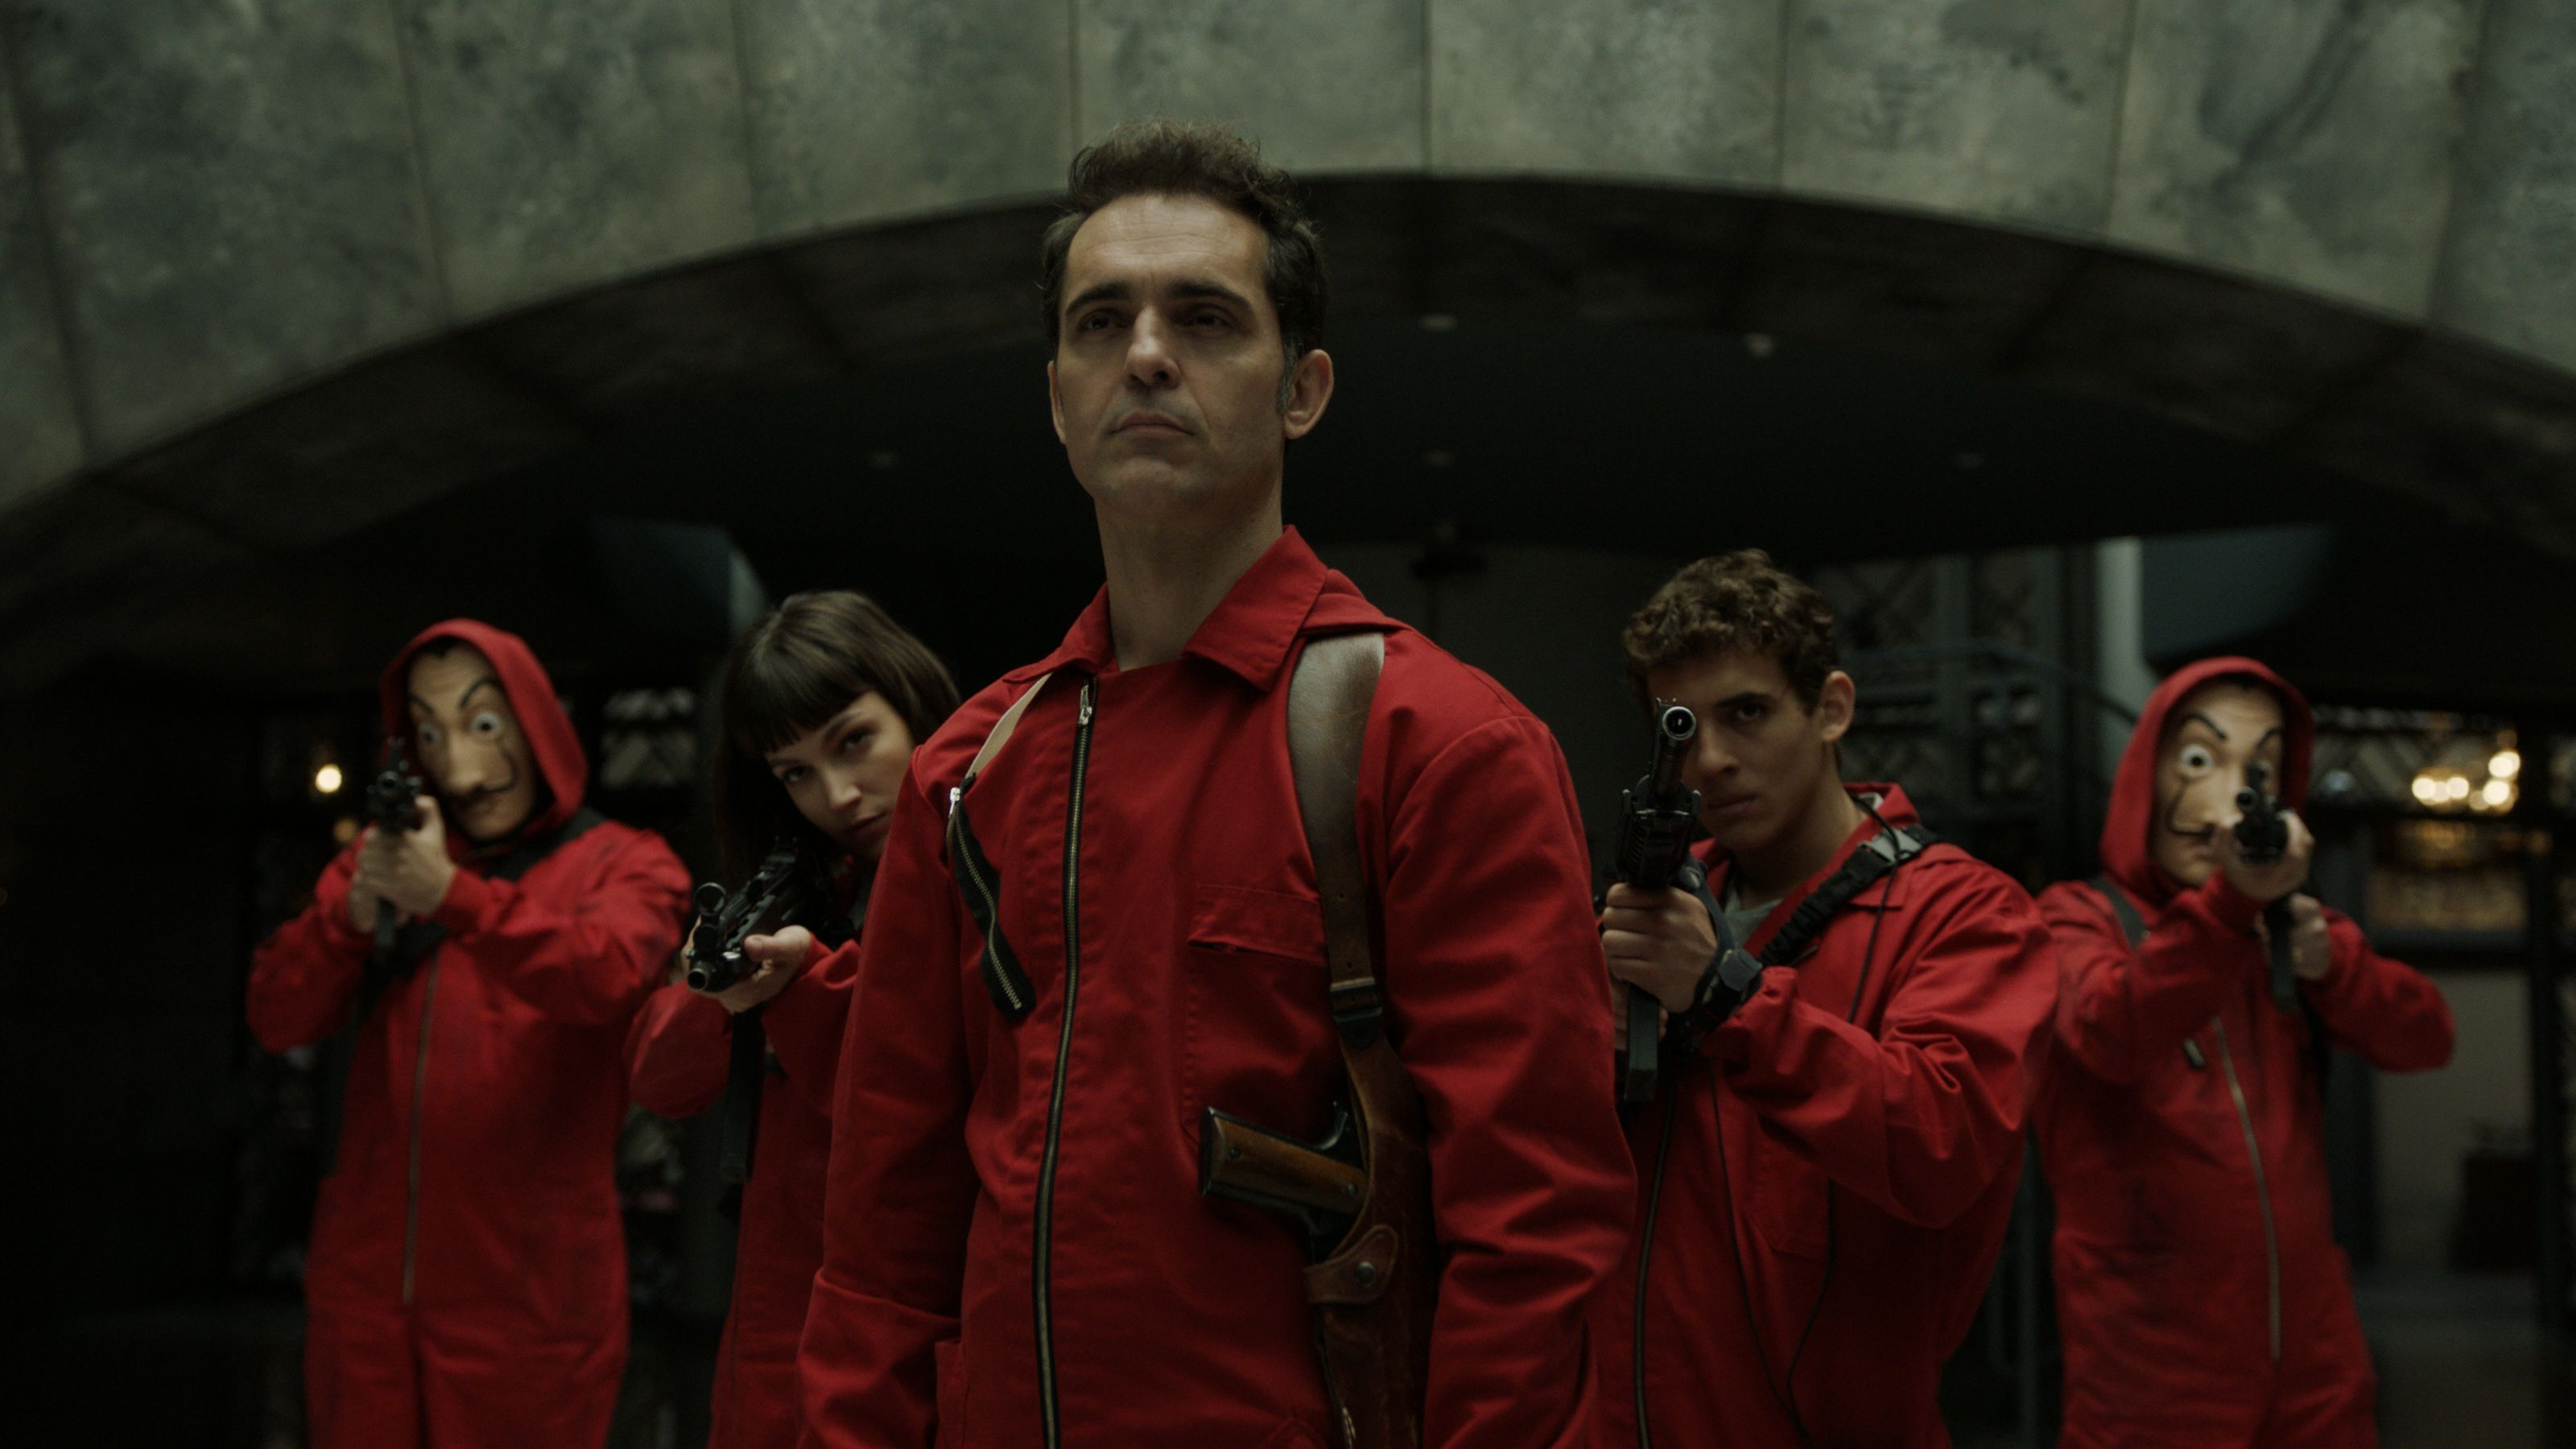 5 Shows Like Netflix's La Casa de Papel (Money Heist)